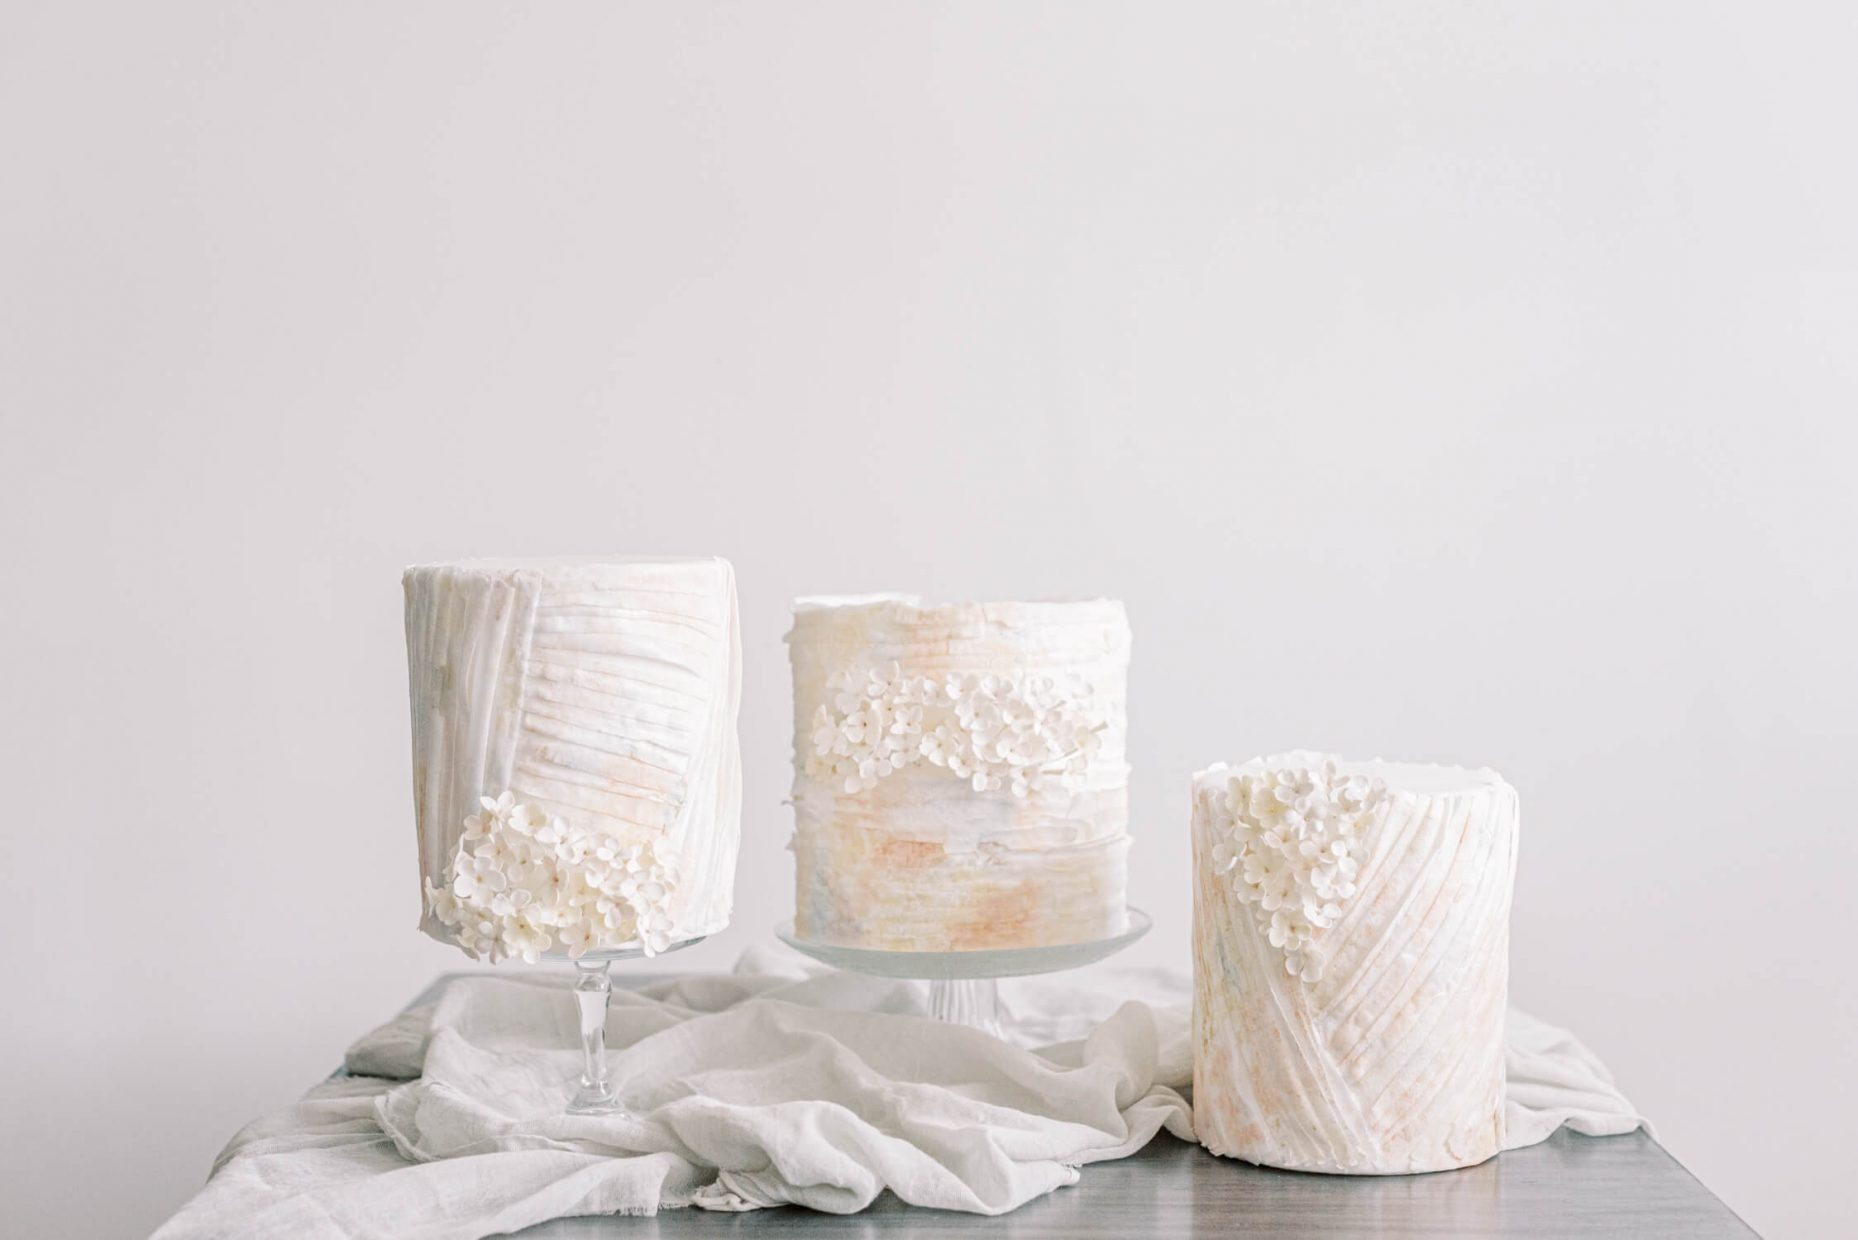 three white simple mini wedding cakes with tiny sugar flowers and wafer designs perfect for intimate microwedding giveaways. styled with cheesecloth on white light a=bright and airy background. Styled by Oxfordshire Wedding Planner Alexandra Rose Weddings and Photo by London Photographer Cristina Ilao